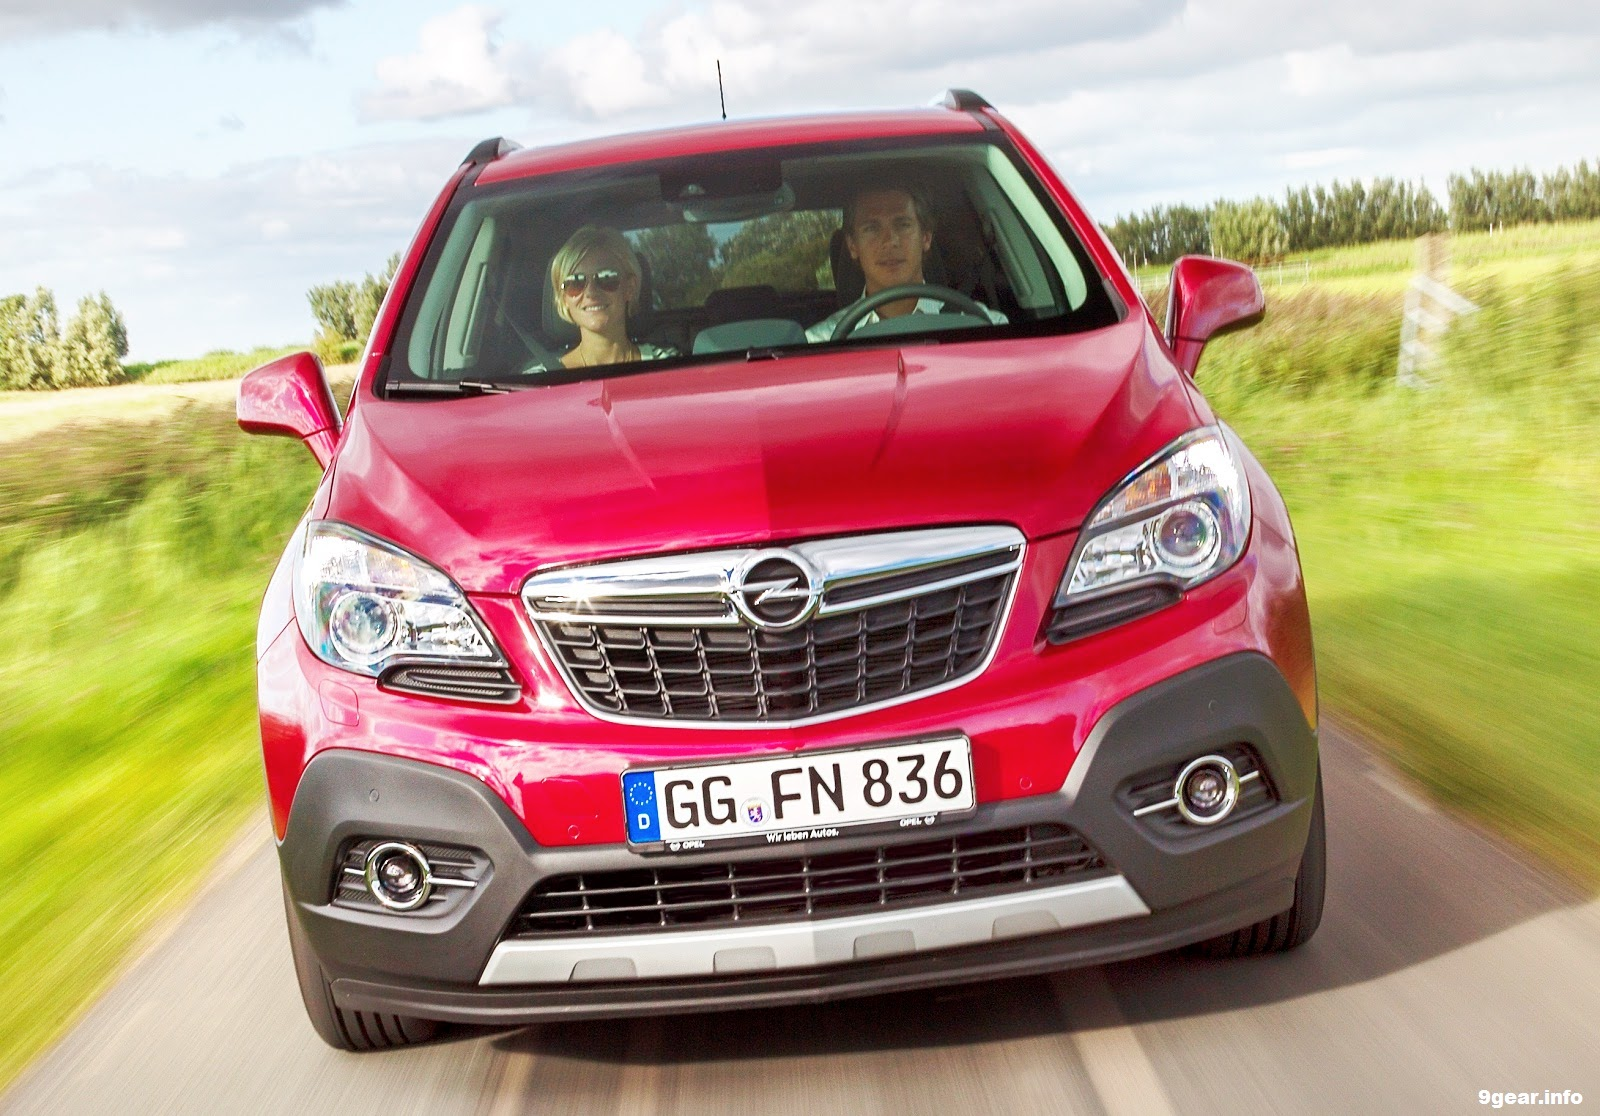 car reviews new car pictures for 2018 2019 2015 opel mokka compact in size big in attitude. Black Bedroom Furniture Sets. Home Design Ideas